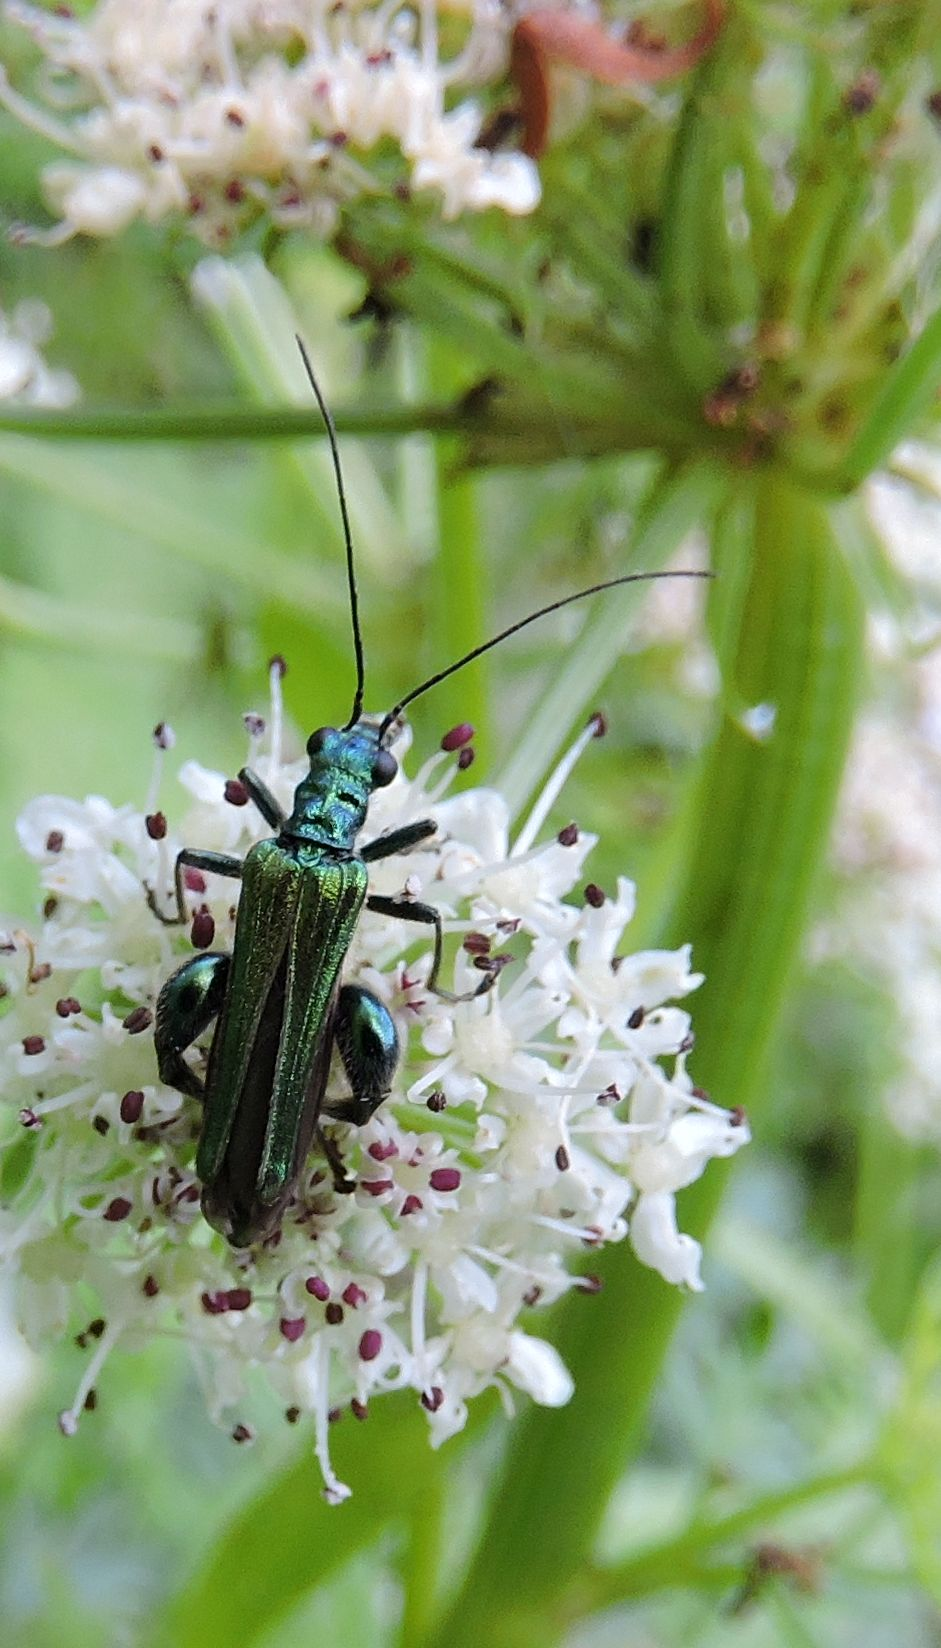 Swollen thighed Flower Beetle